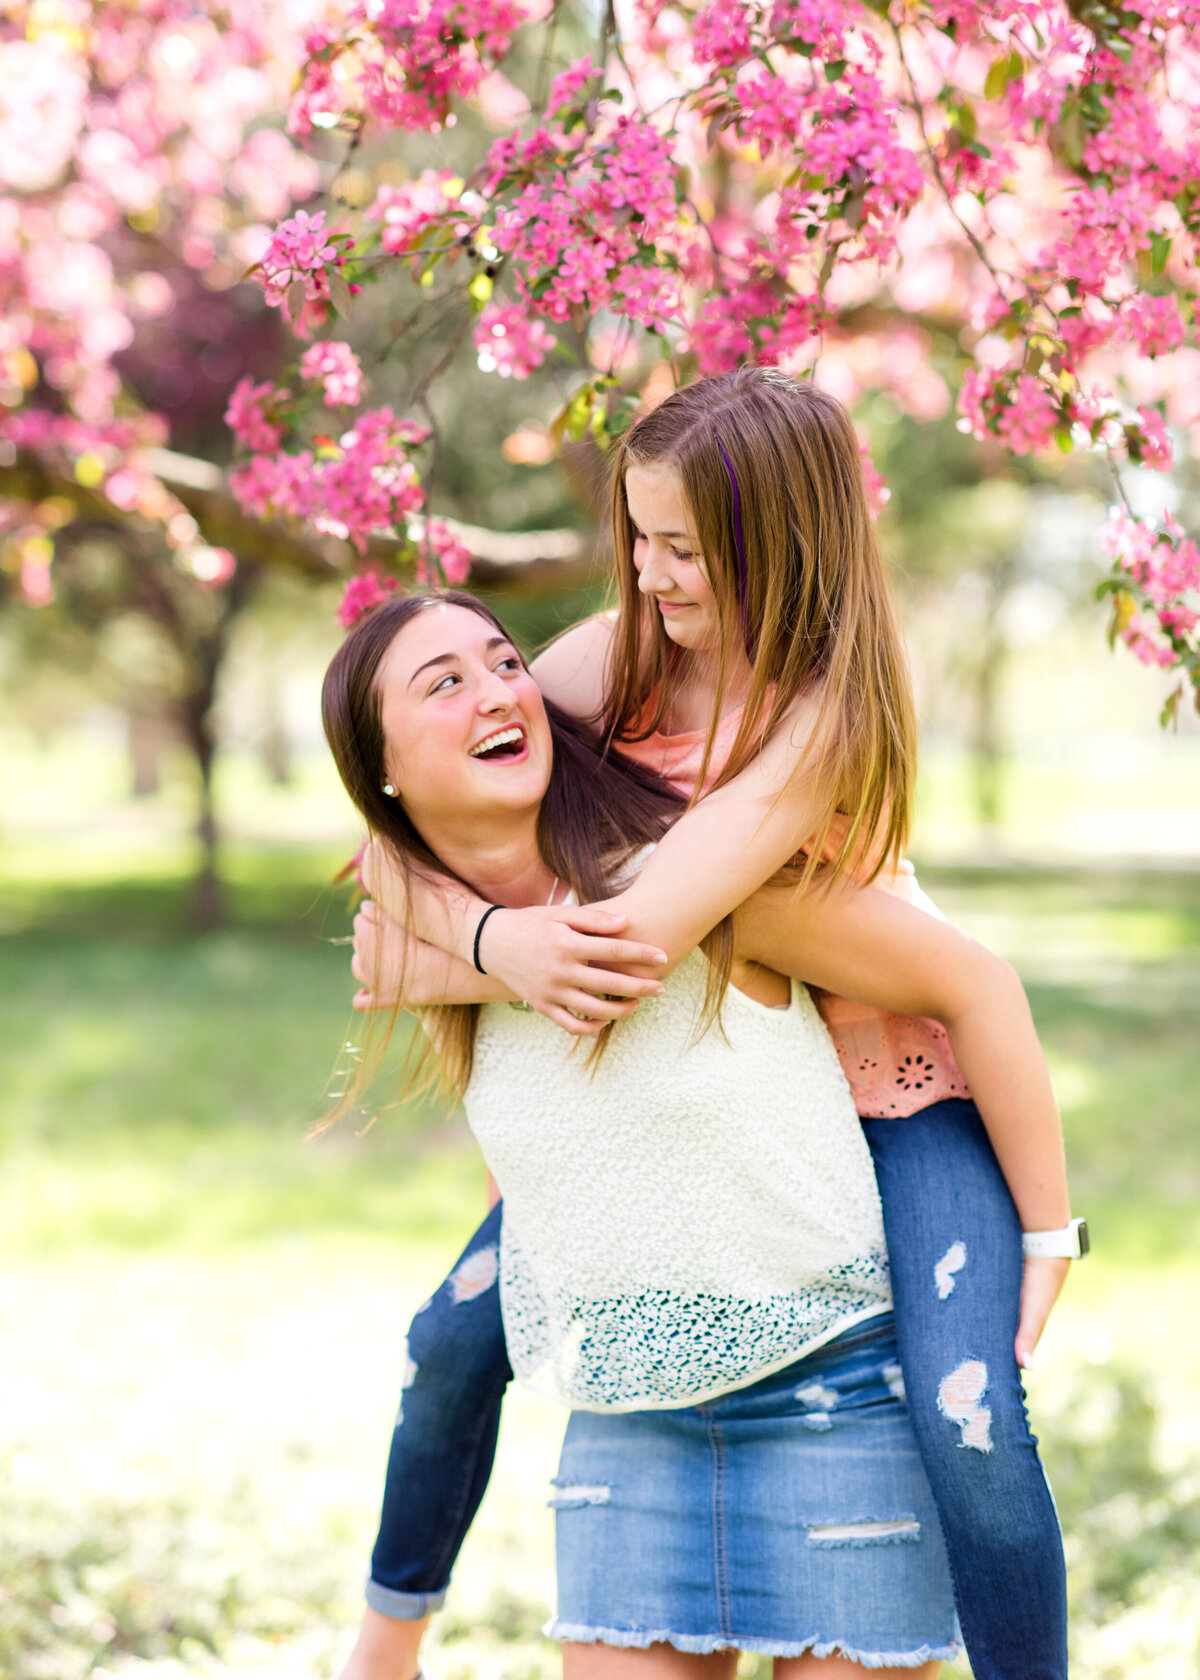 Des-Moines-Iowa-Family-Photographer-Theresa-Schumacher-Photography-Spring-Sisters-Laughing